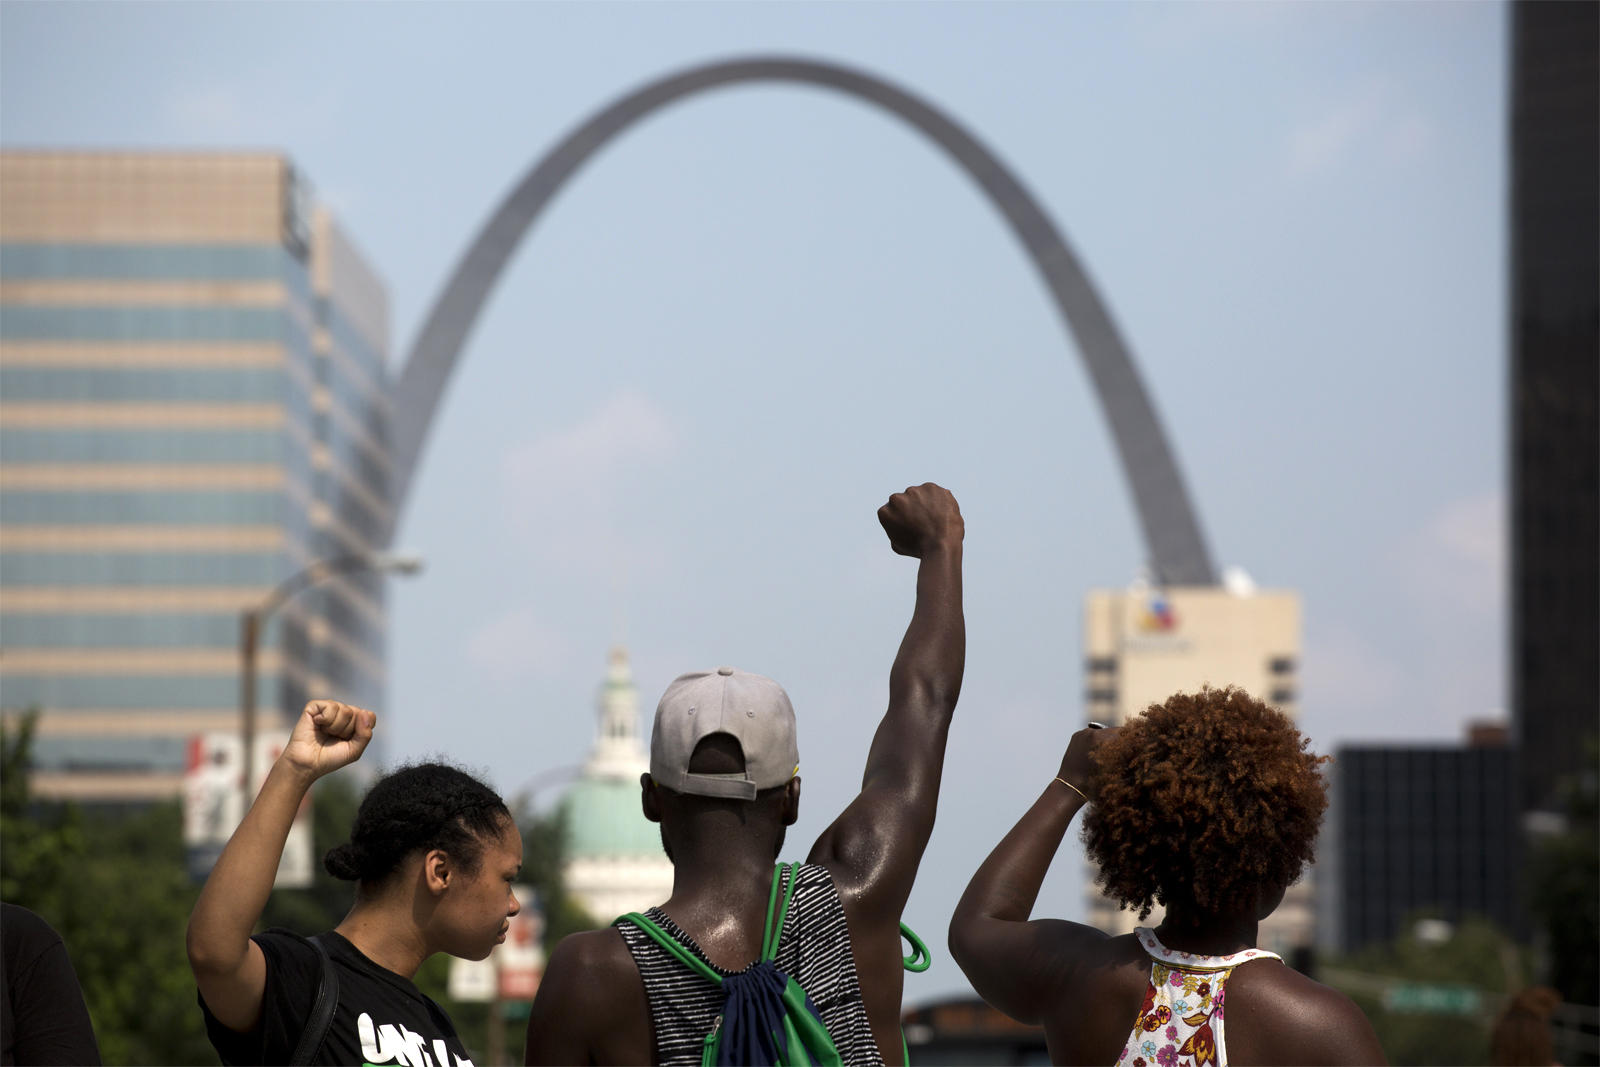 Forward Through Ferguson sets sights on 2039 for equality in metro ...